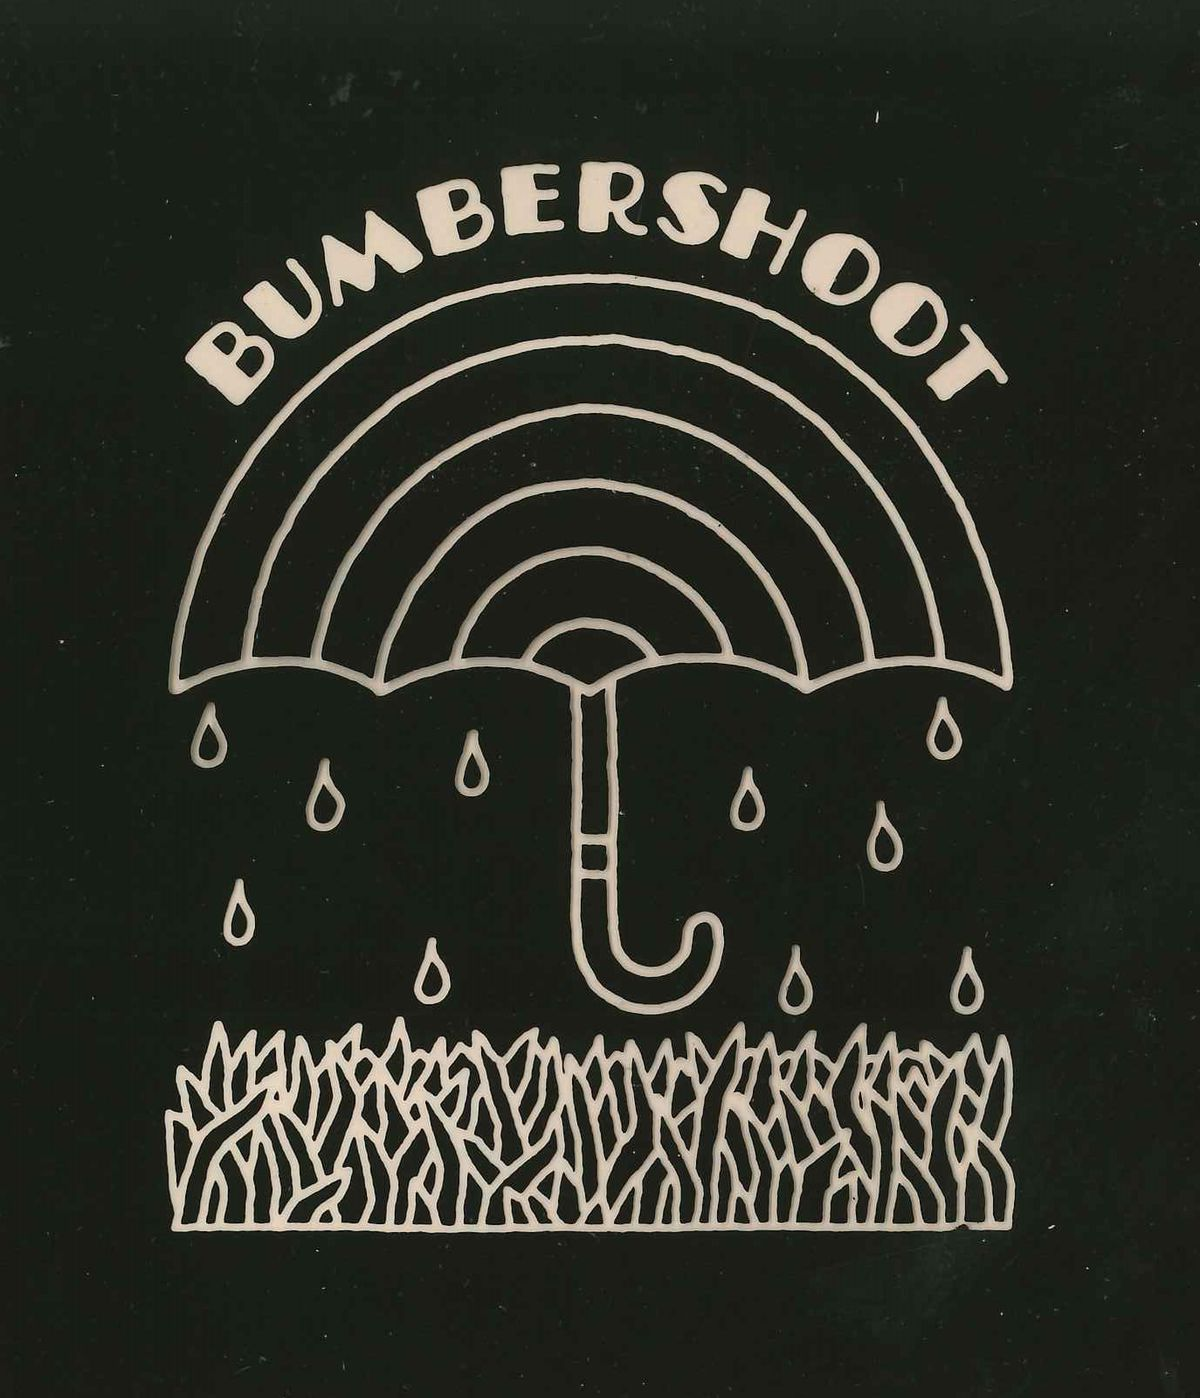 A black-and-white logo. On a black background, an umbrella with a rainbow-like striped design and raindrops coming down on it. There's grass below, and the text BUMBERSHOOT lines the top of the umbrella.